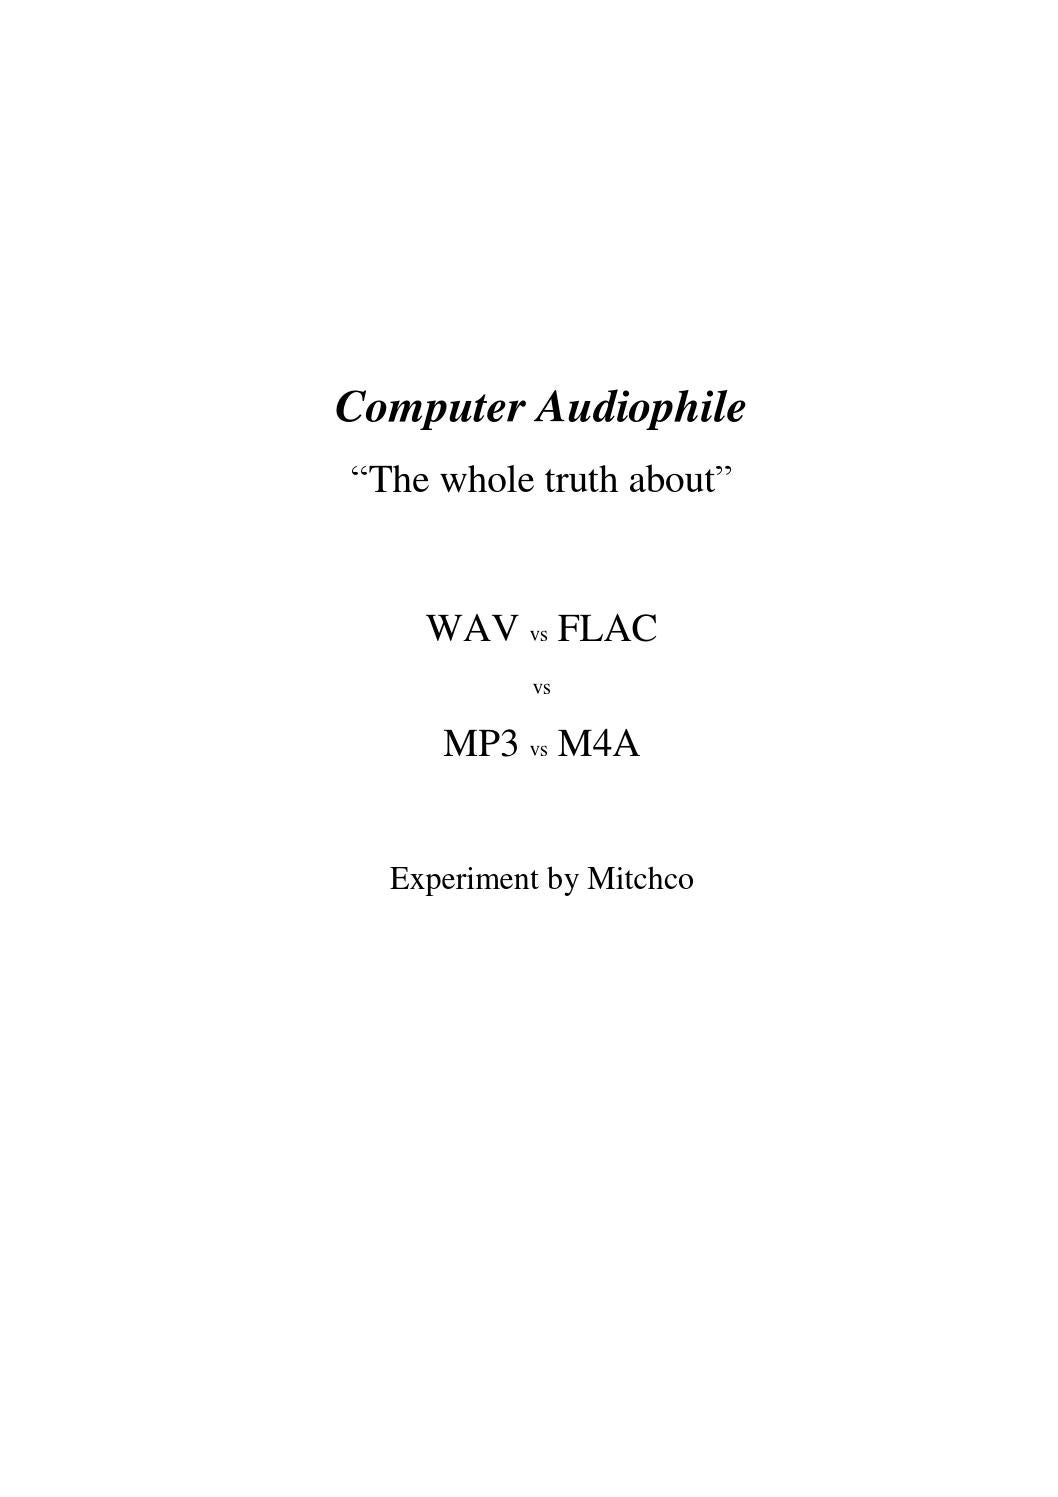 WAV vs FLAC vs MP3 vs M4A by Sara Constança - issuu